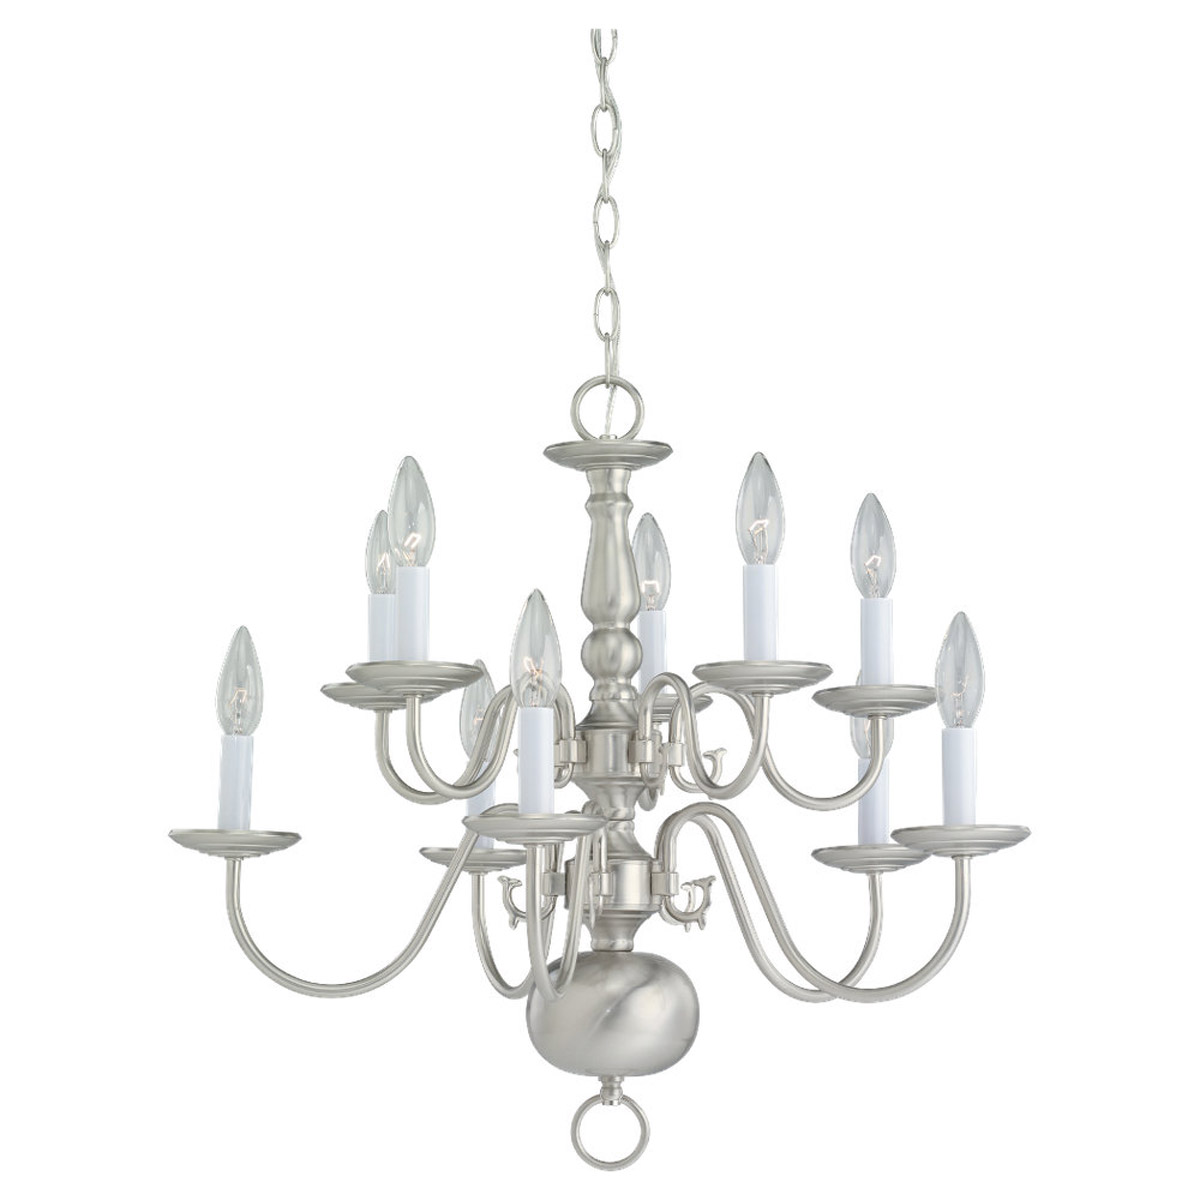 Sea Gull Lighting Traditional 10 Light Chandelier in Brushed Nickel 3413-962 photo